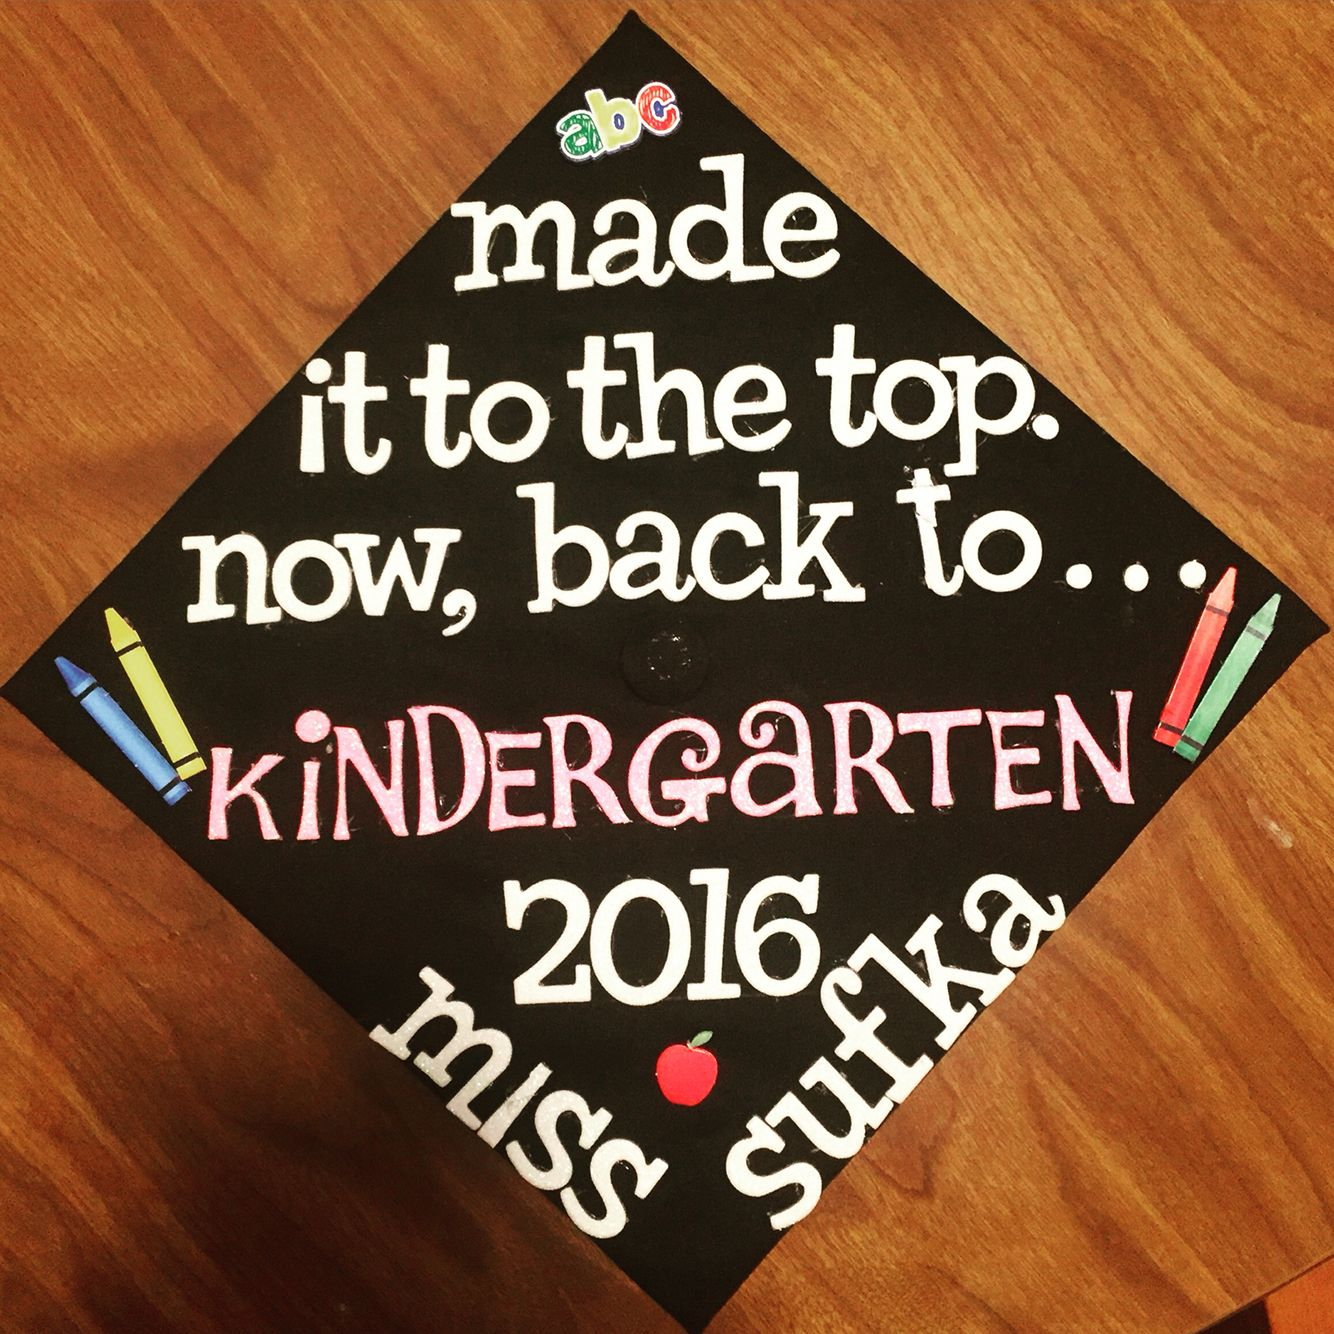 Decorating graduation cap ideas for teachers - Graduation Cap For Future Kindergarten Teacher